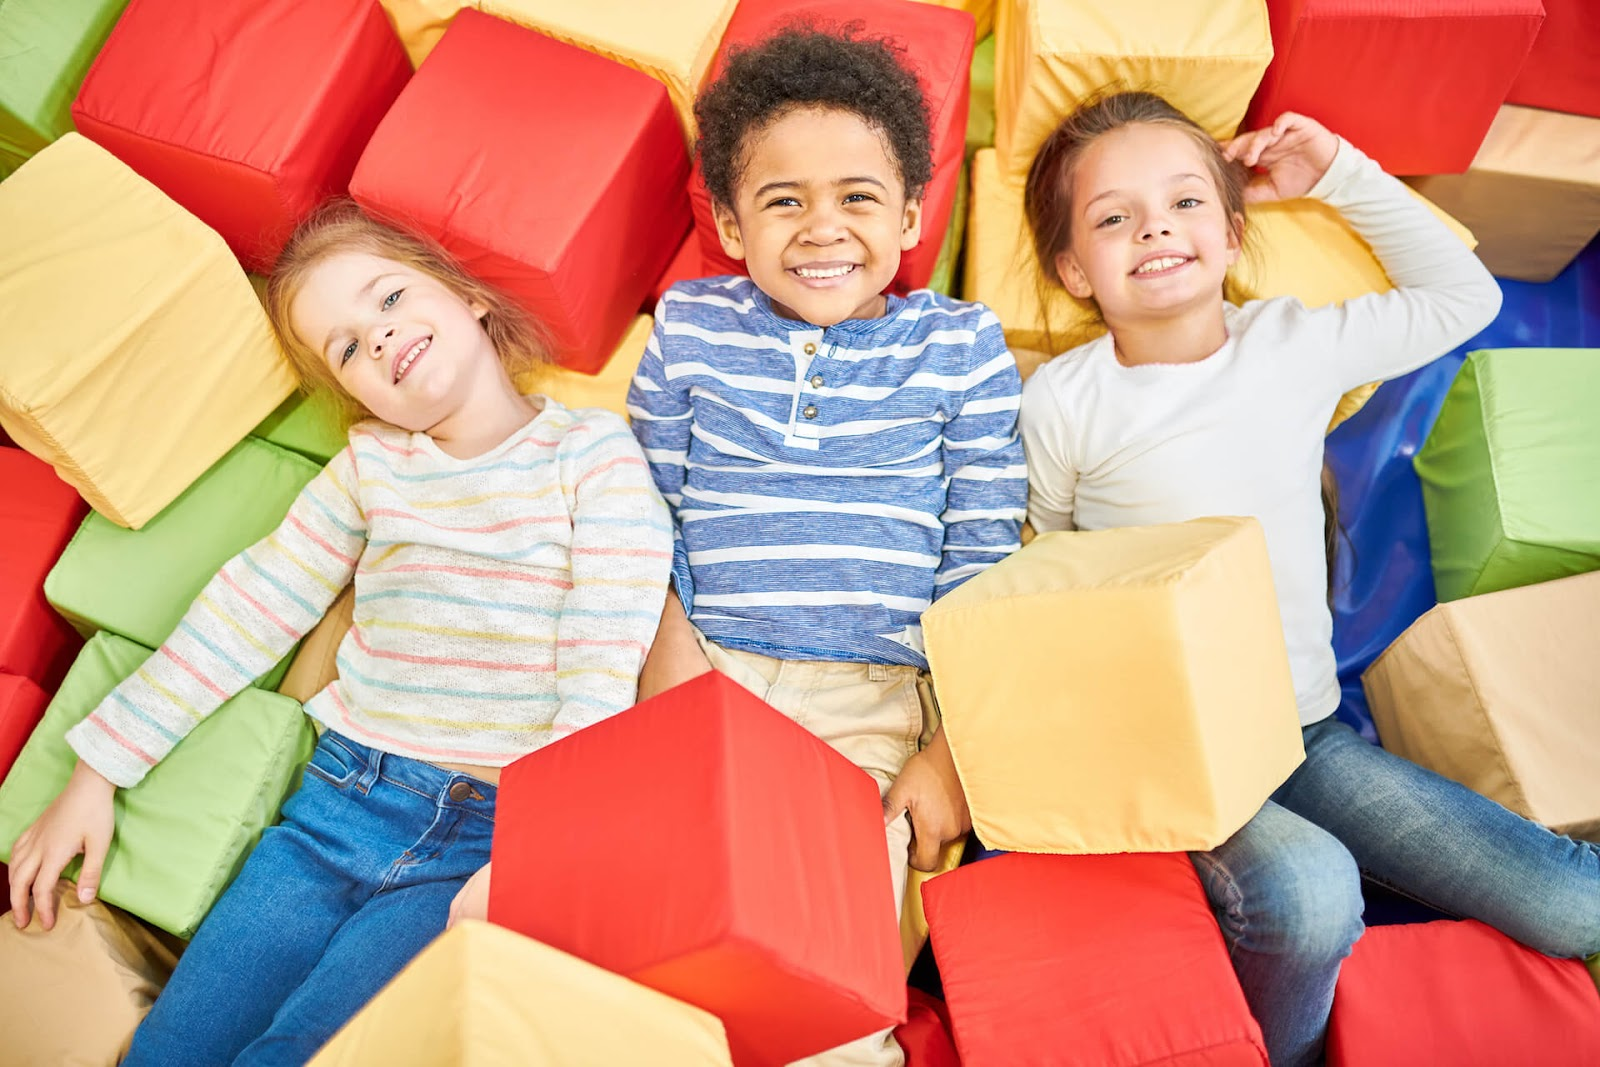 Kids enjoying a foam pit at a birthday party